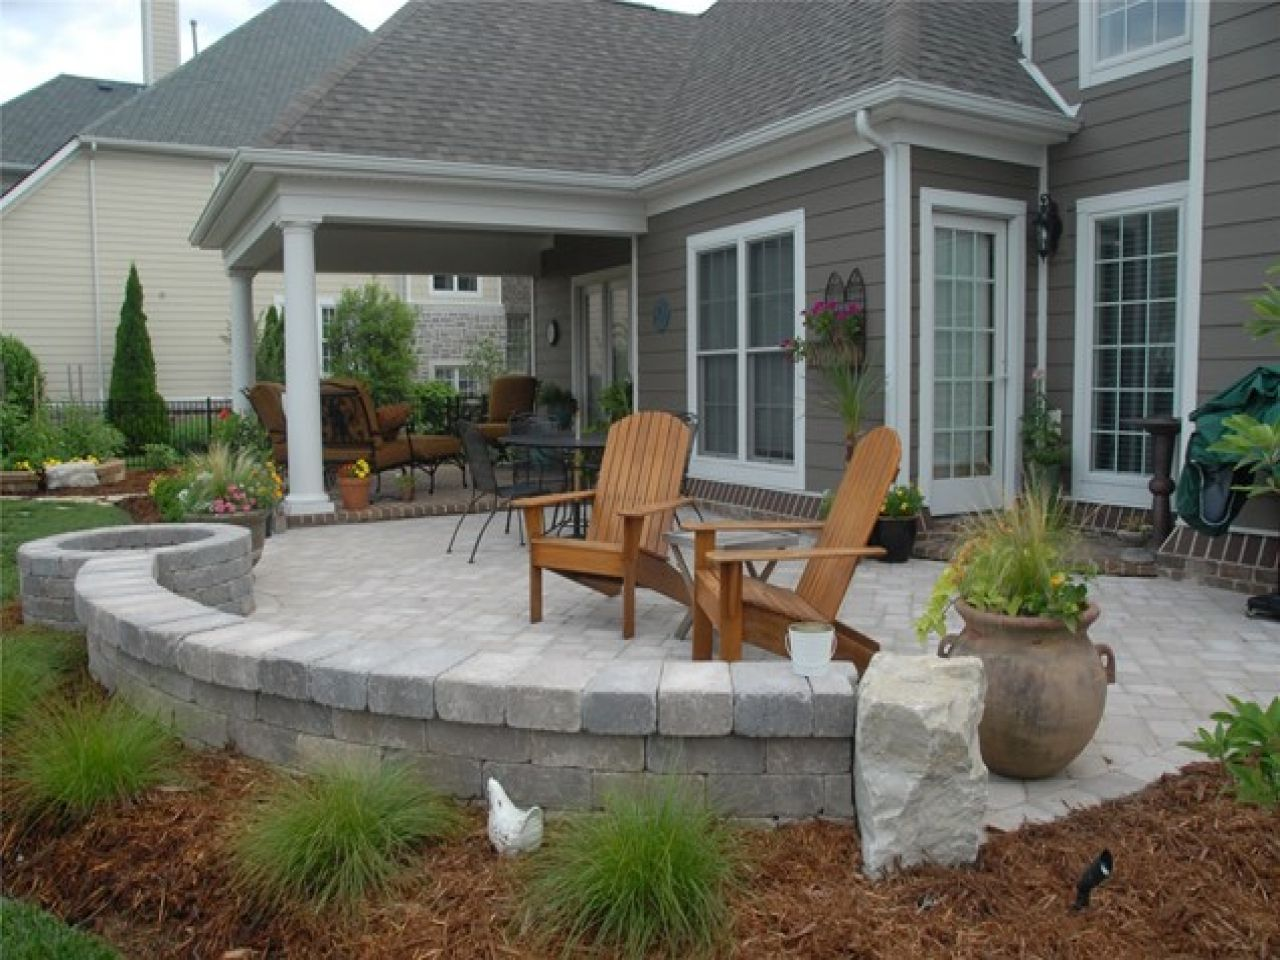 paver-patio-designs-backyard-patio-with-fire-pit-designs